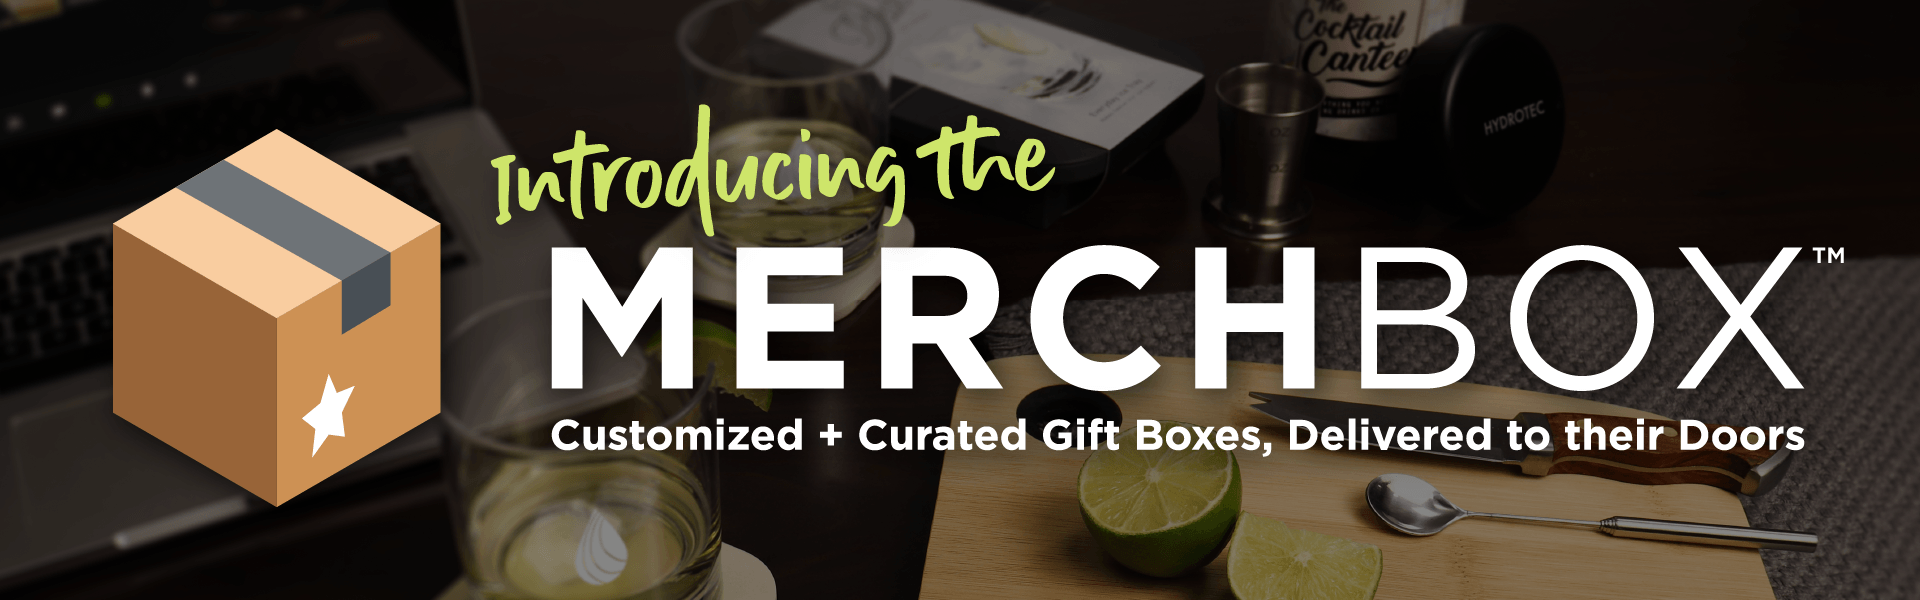 Introducing MerchBoxes